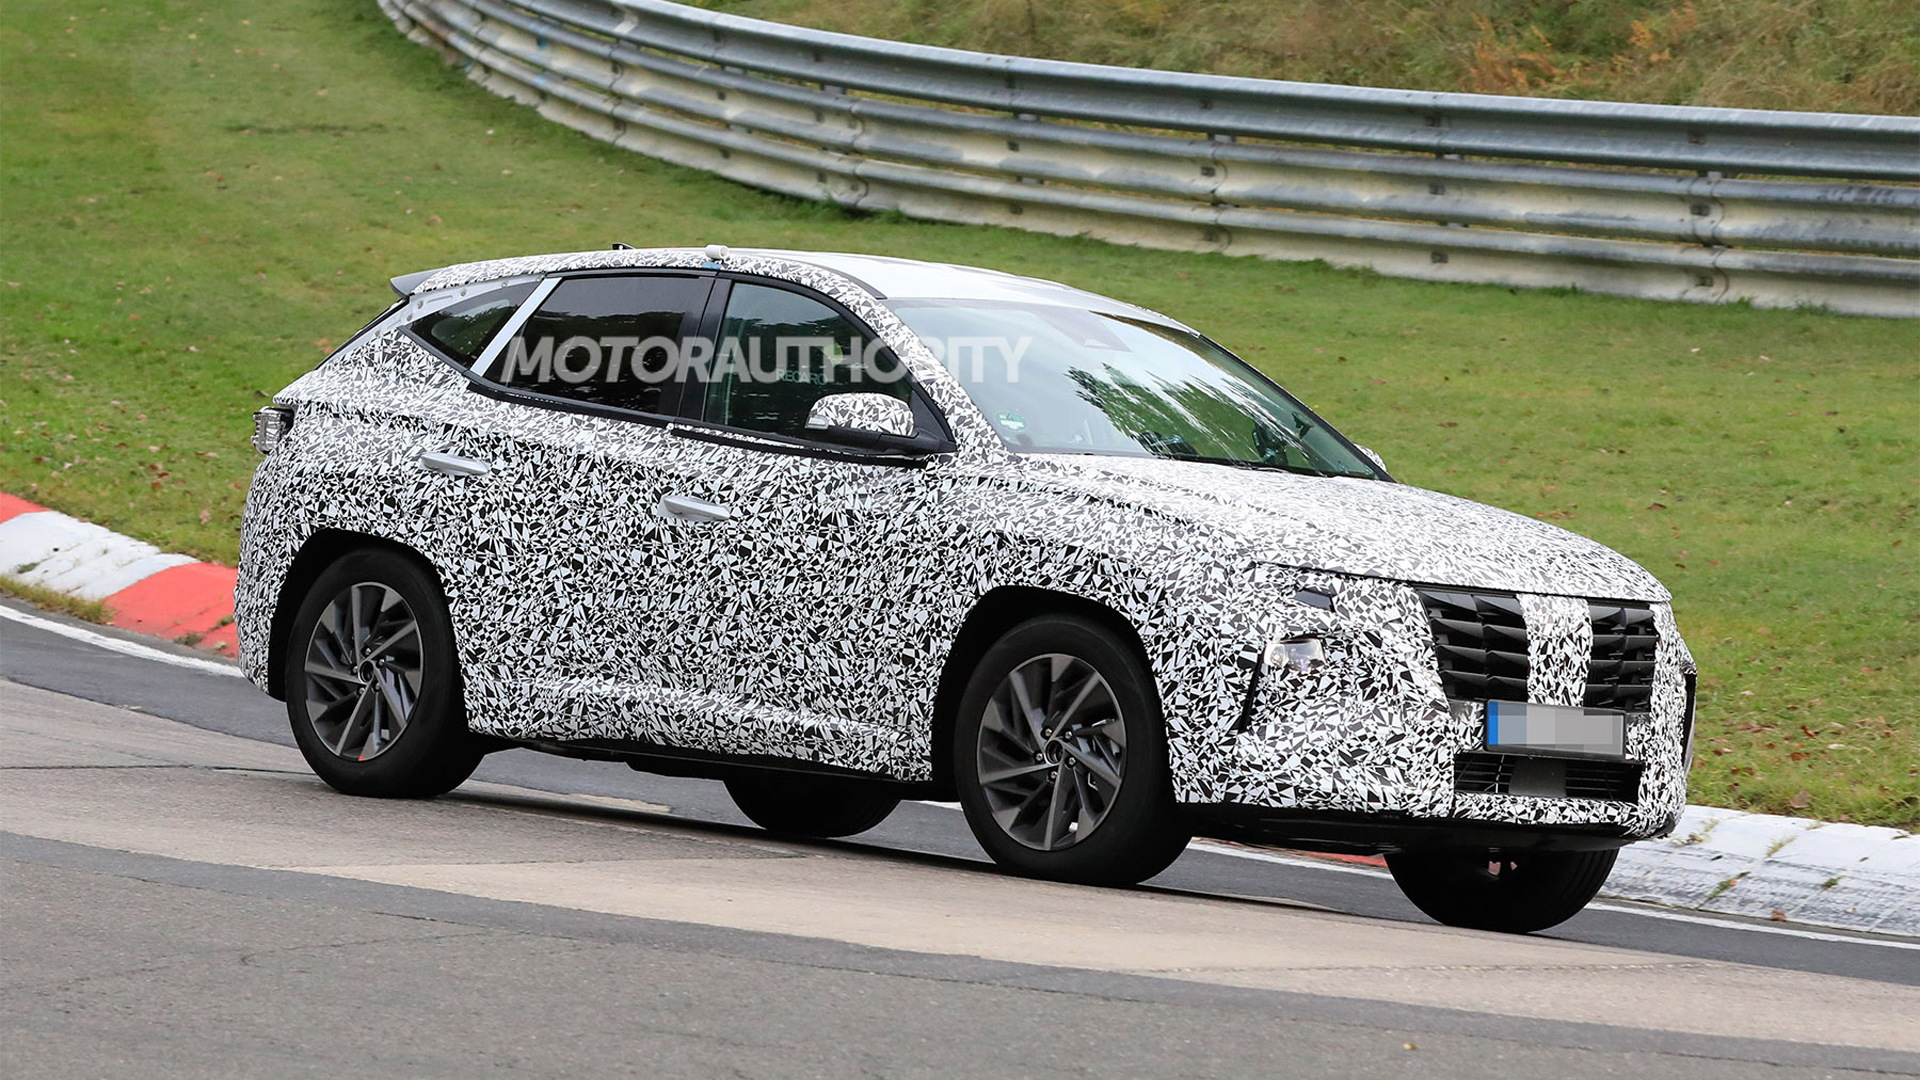 2022 Hyundai Tucson spy shots - Photo credit: S. Baldauf/SB-Medien